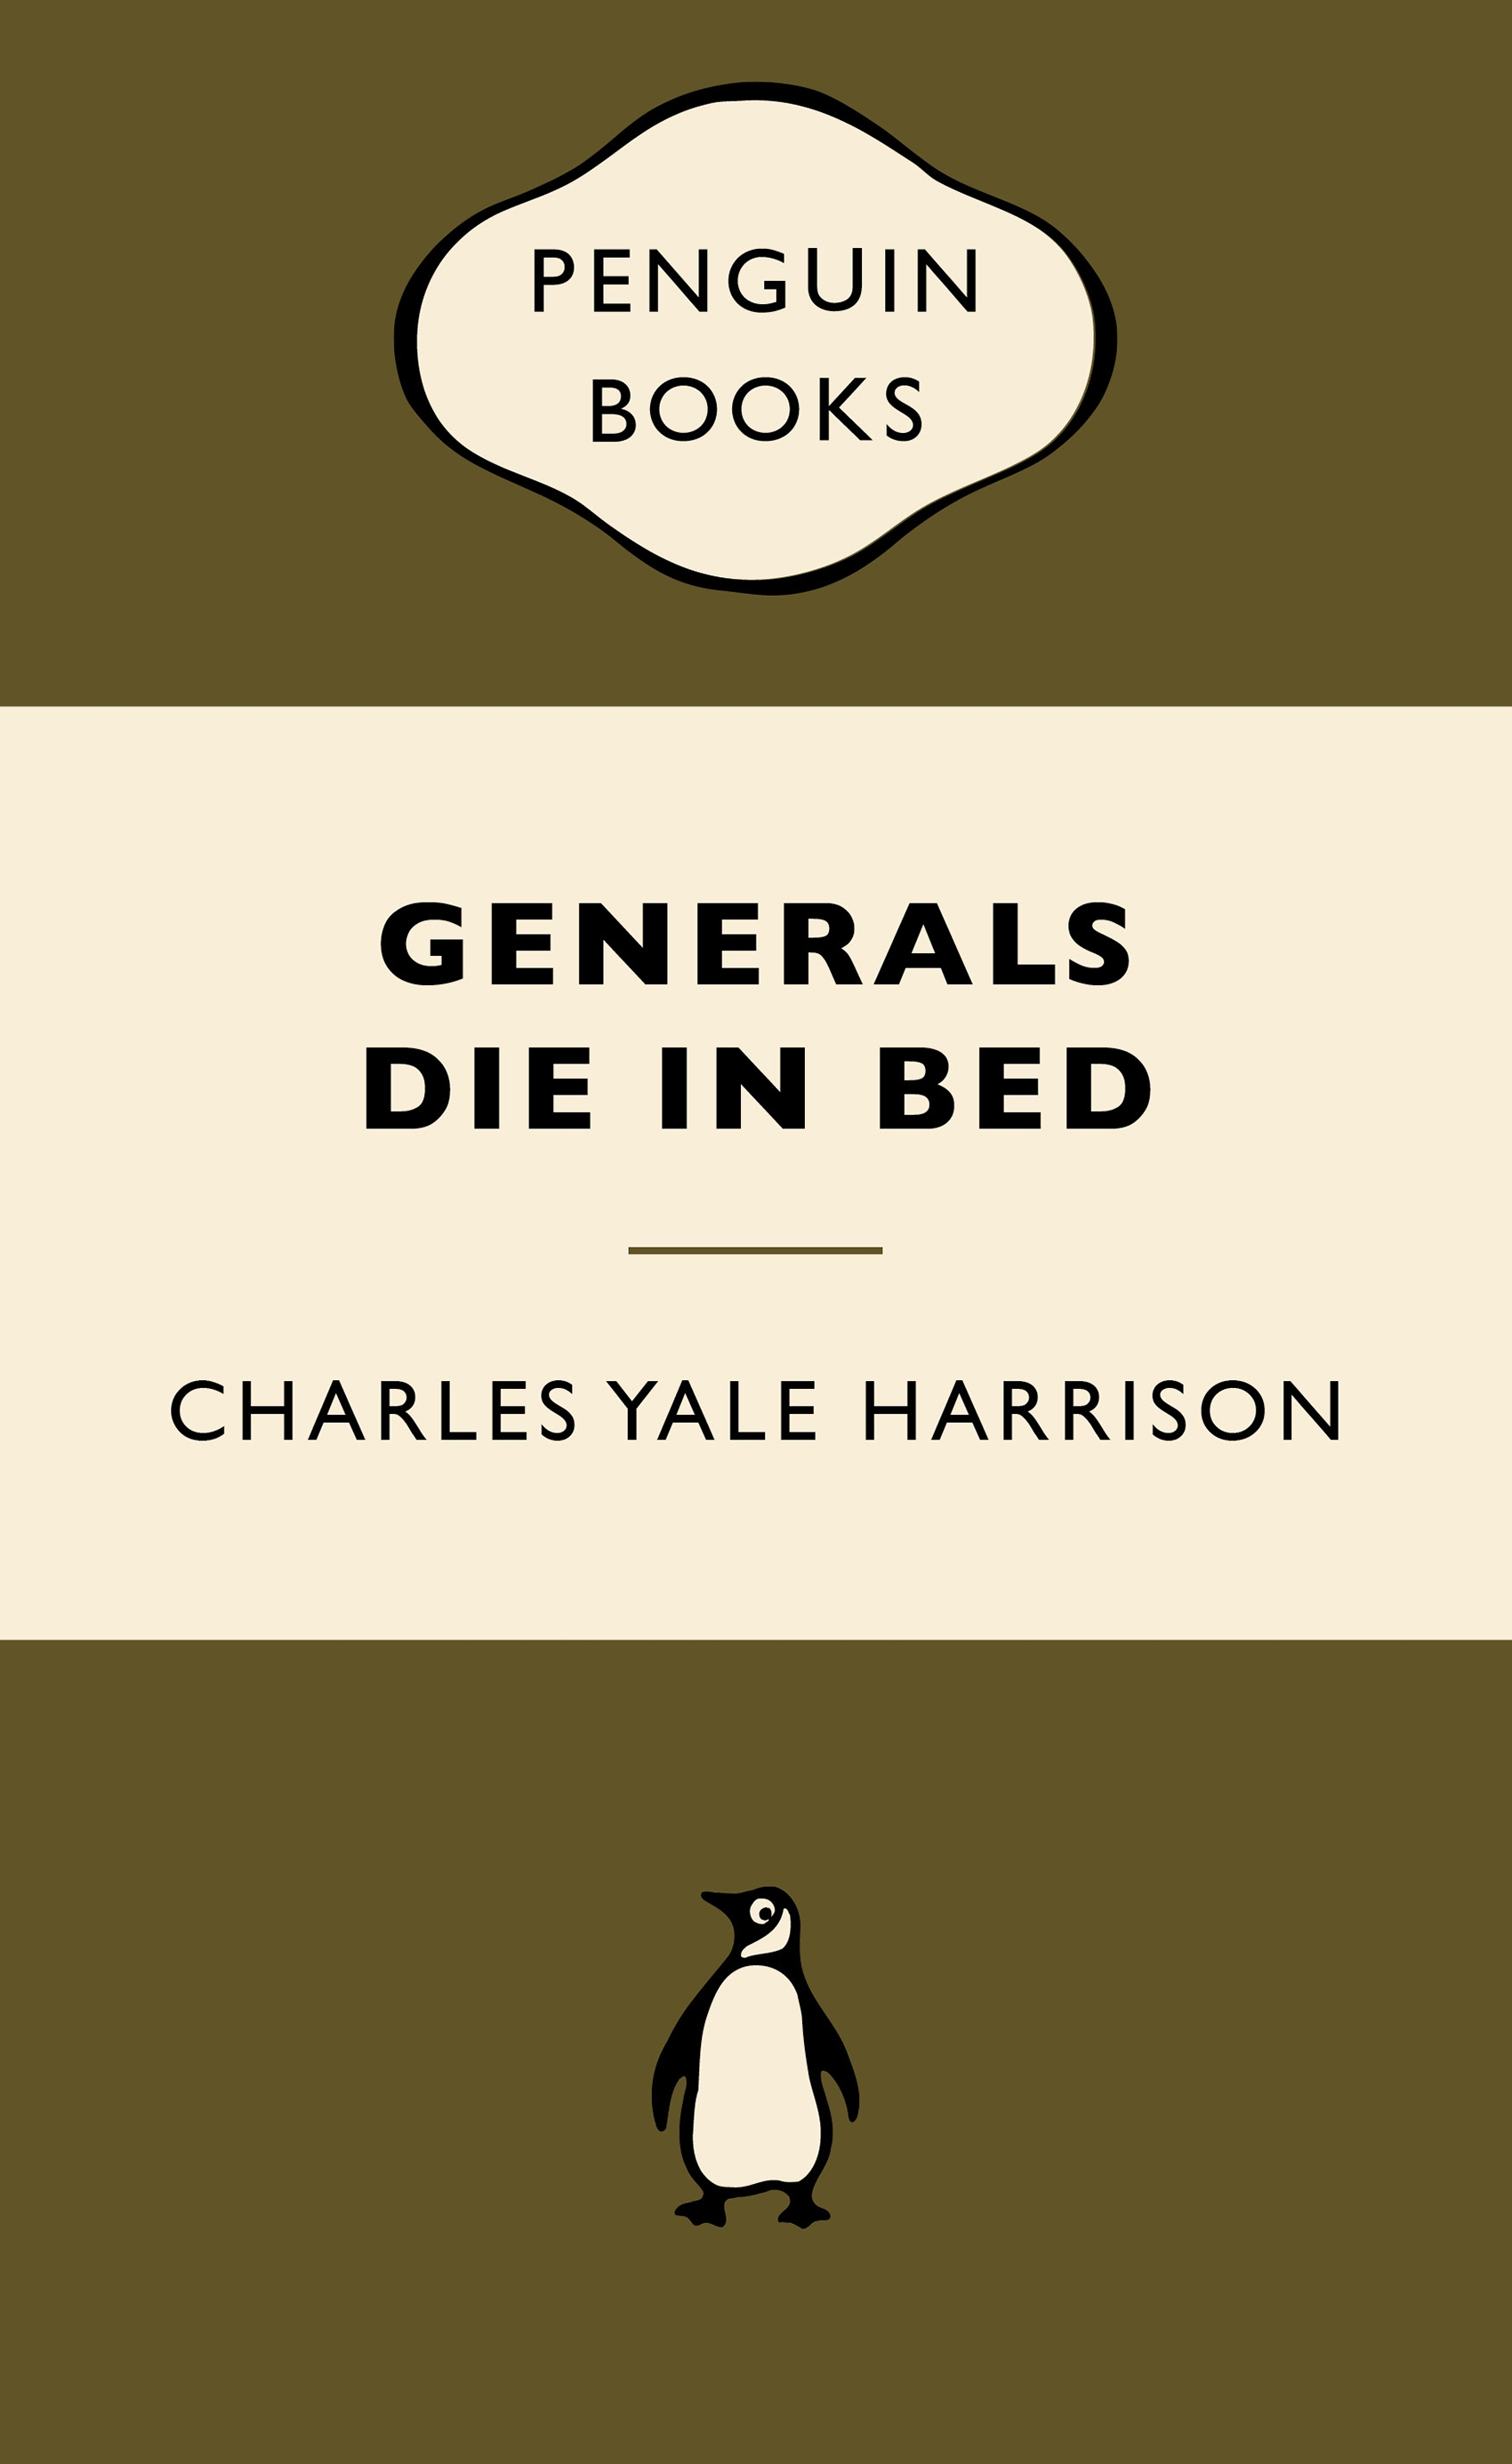 generals die in bed essay generals die in bed